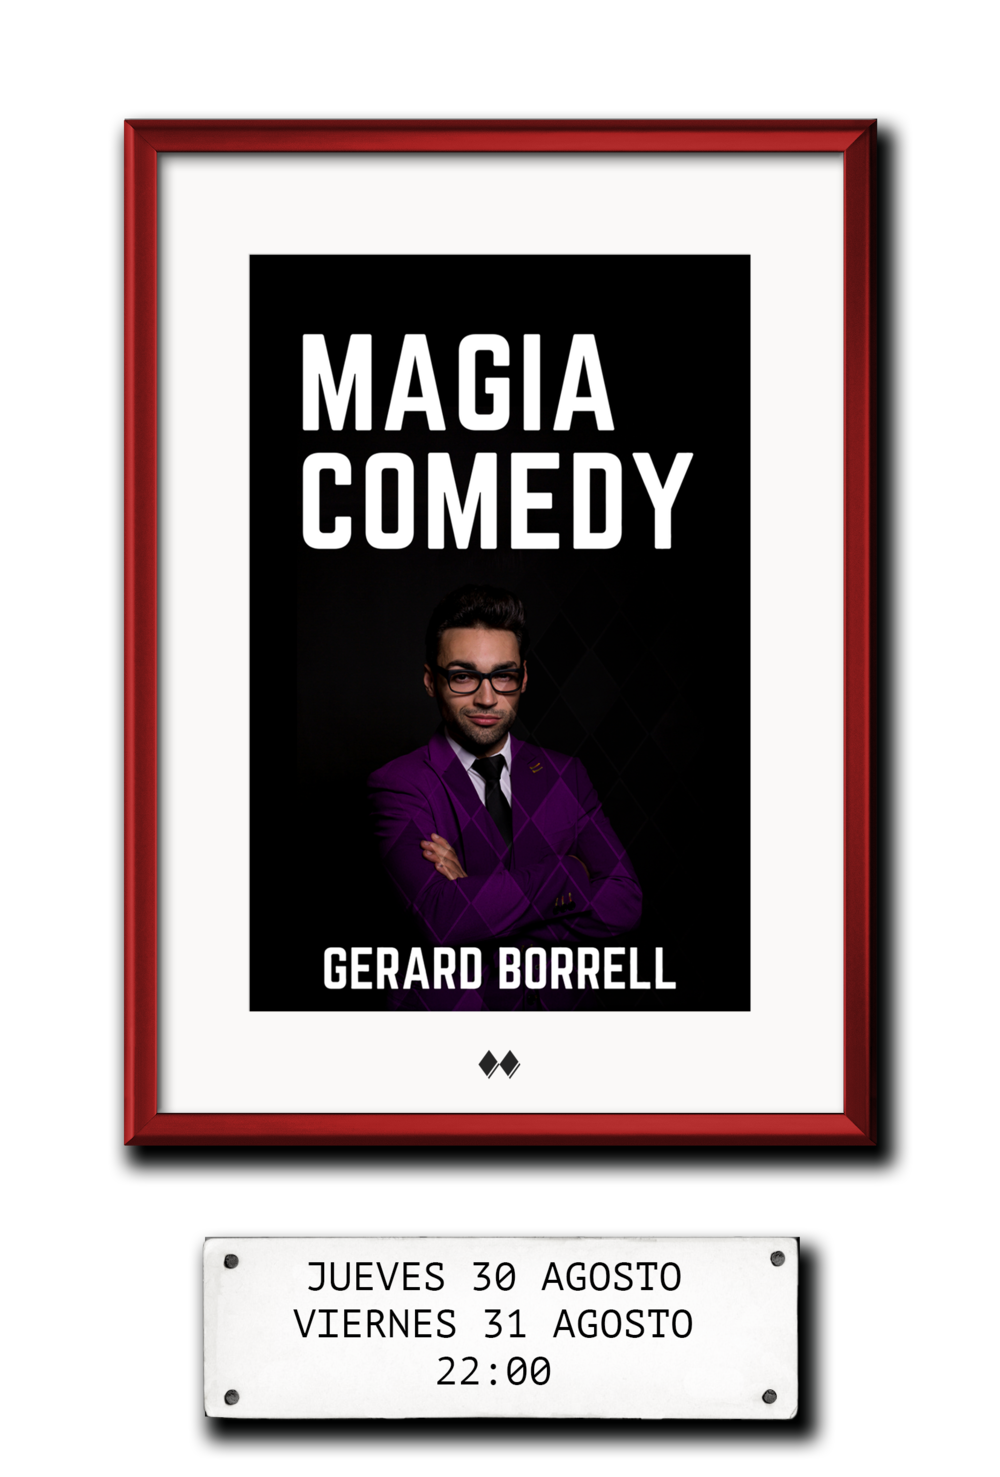 cuadro-gerard-borrel-magic-comedy-magia-comedia-madrid-teatro-arlequin-gran-via-comprar-entradas.png